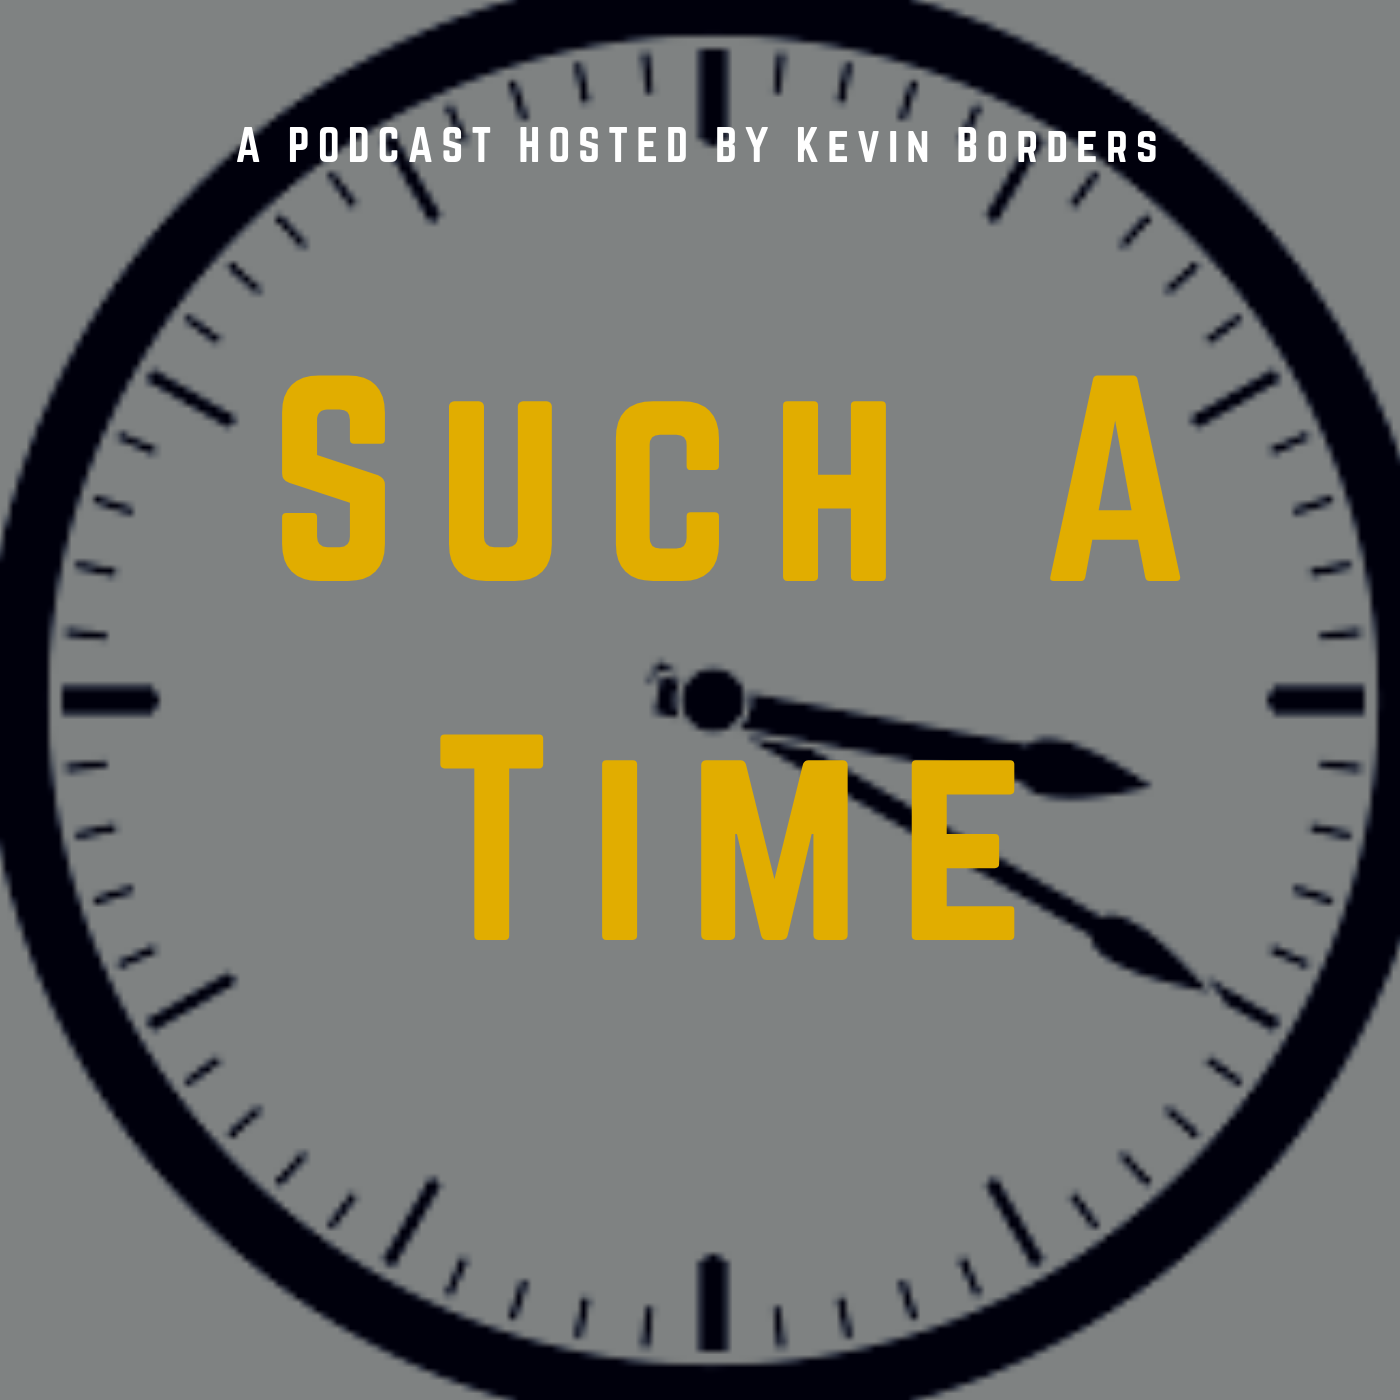 Such A Time Episode 2